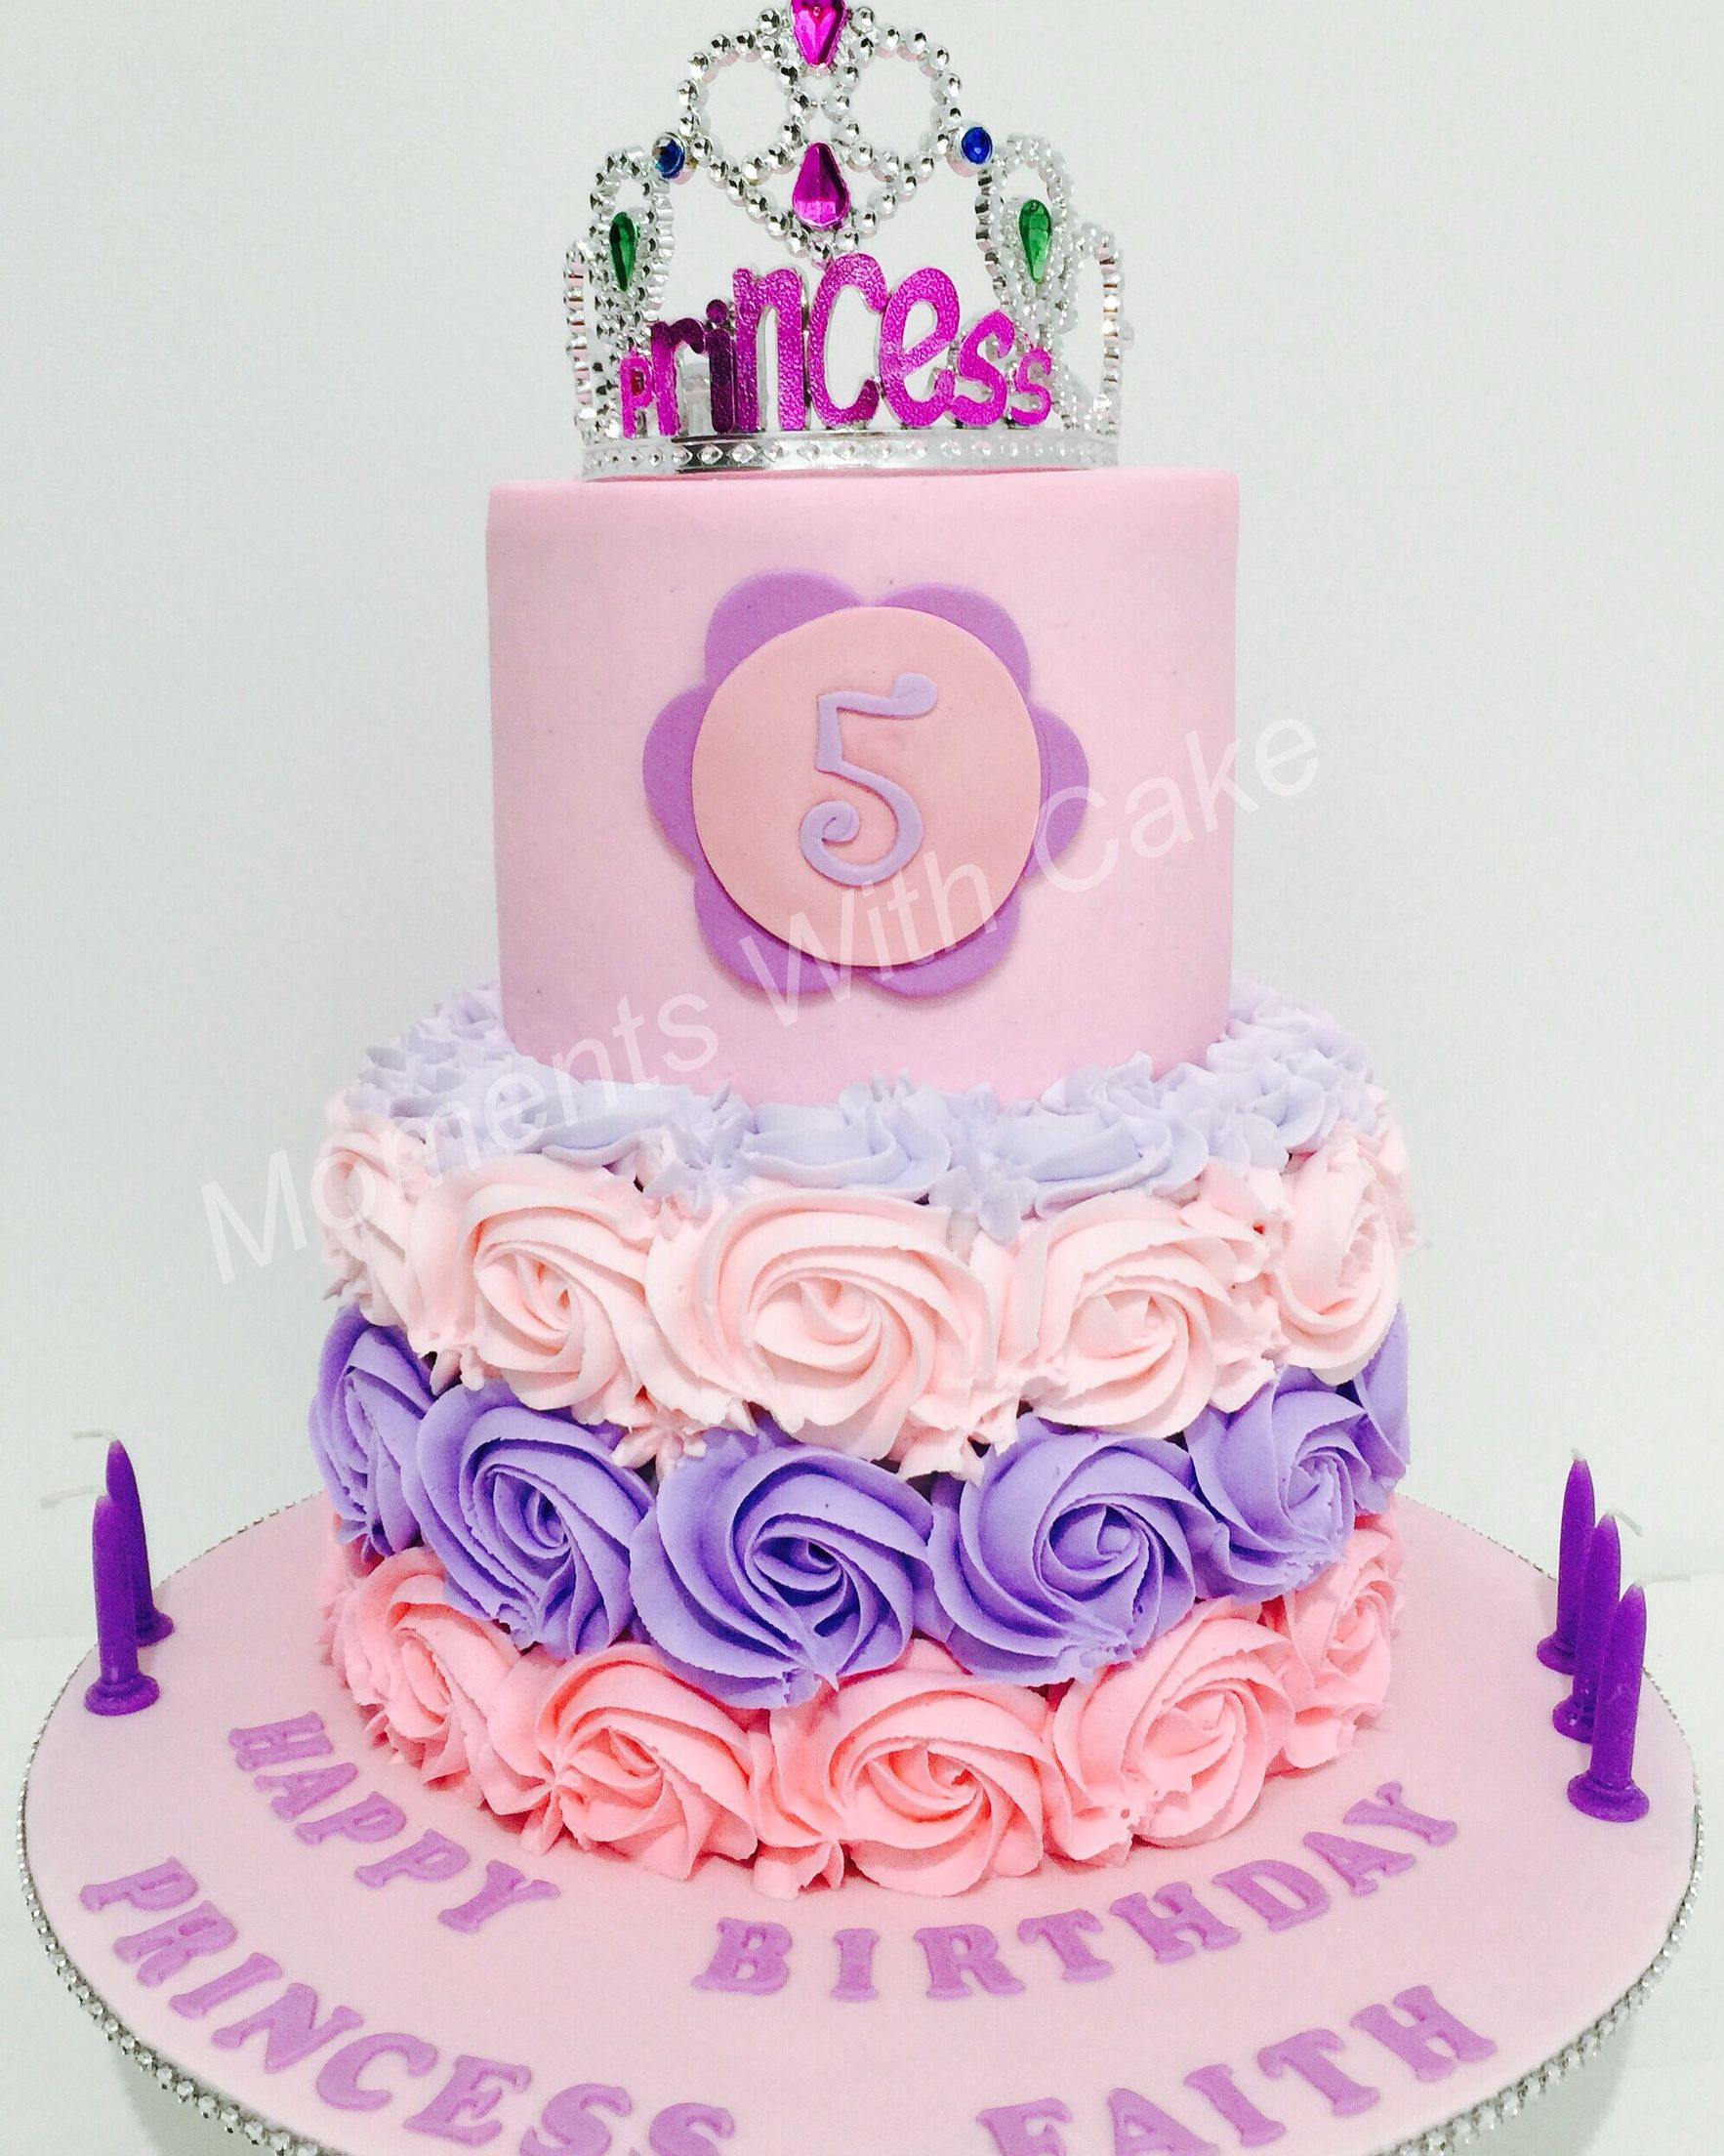 Princess Buttercream Birthday Cake With Pipped Rosettes On The